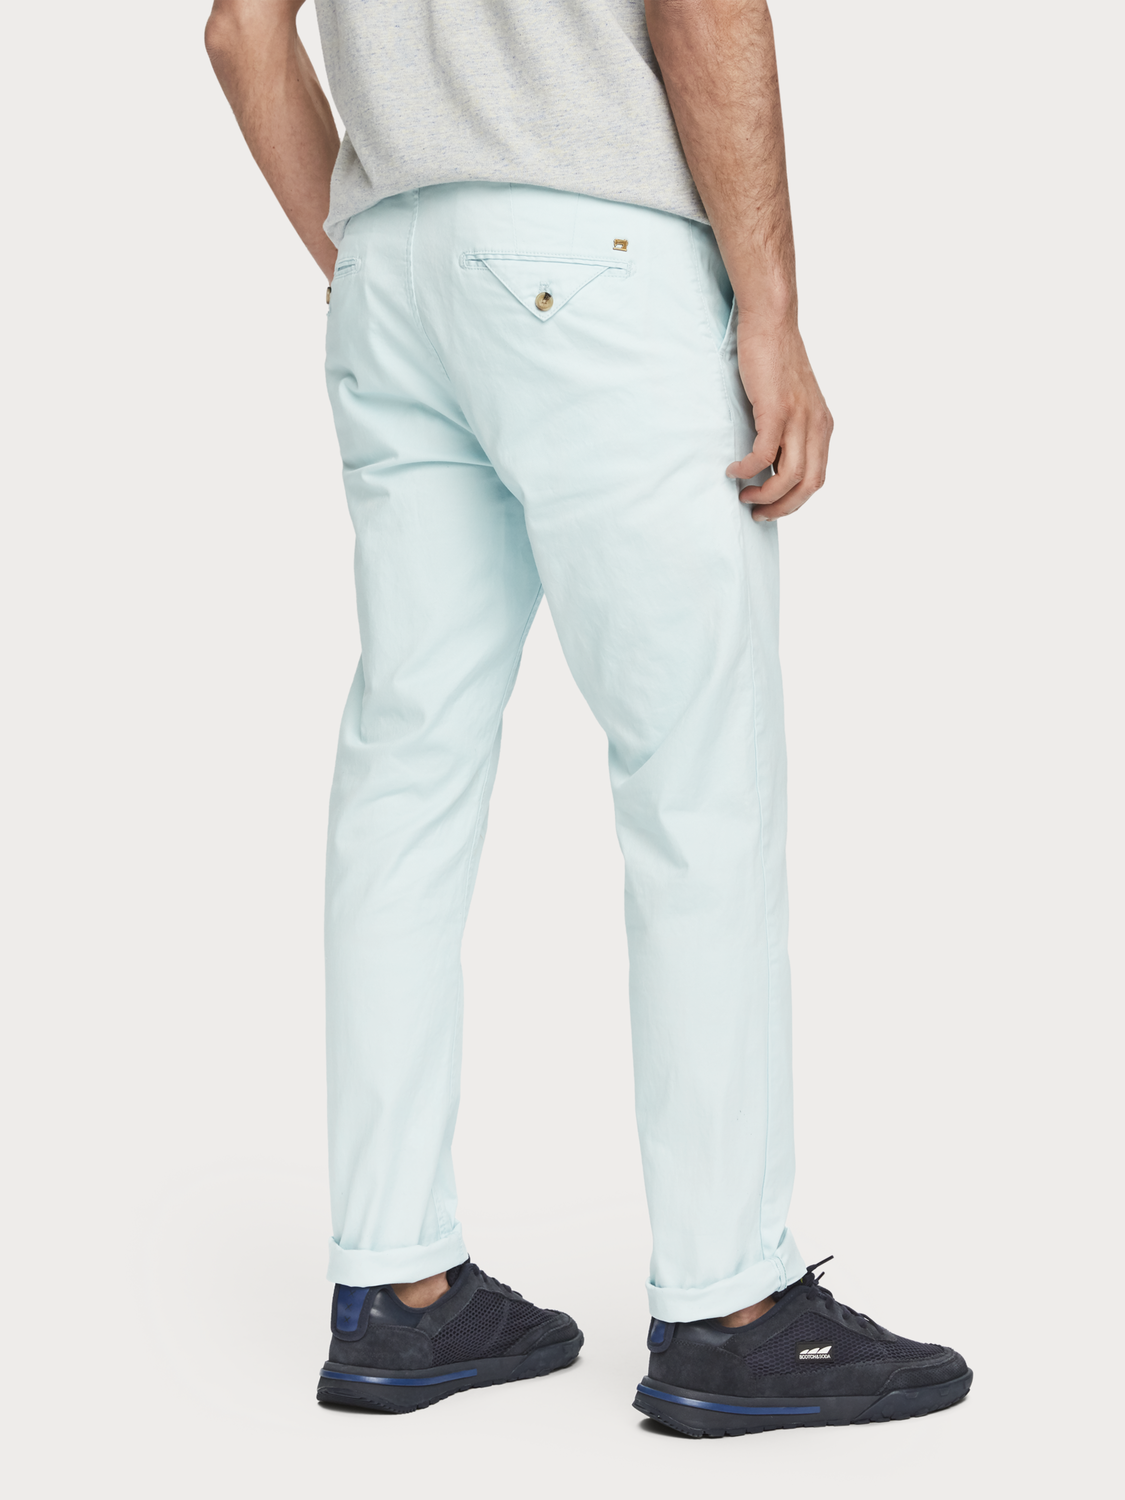 Men Stuart - classic chinos | Regular slim fit